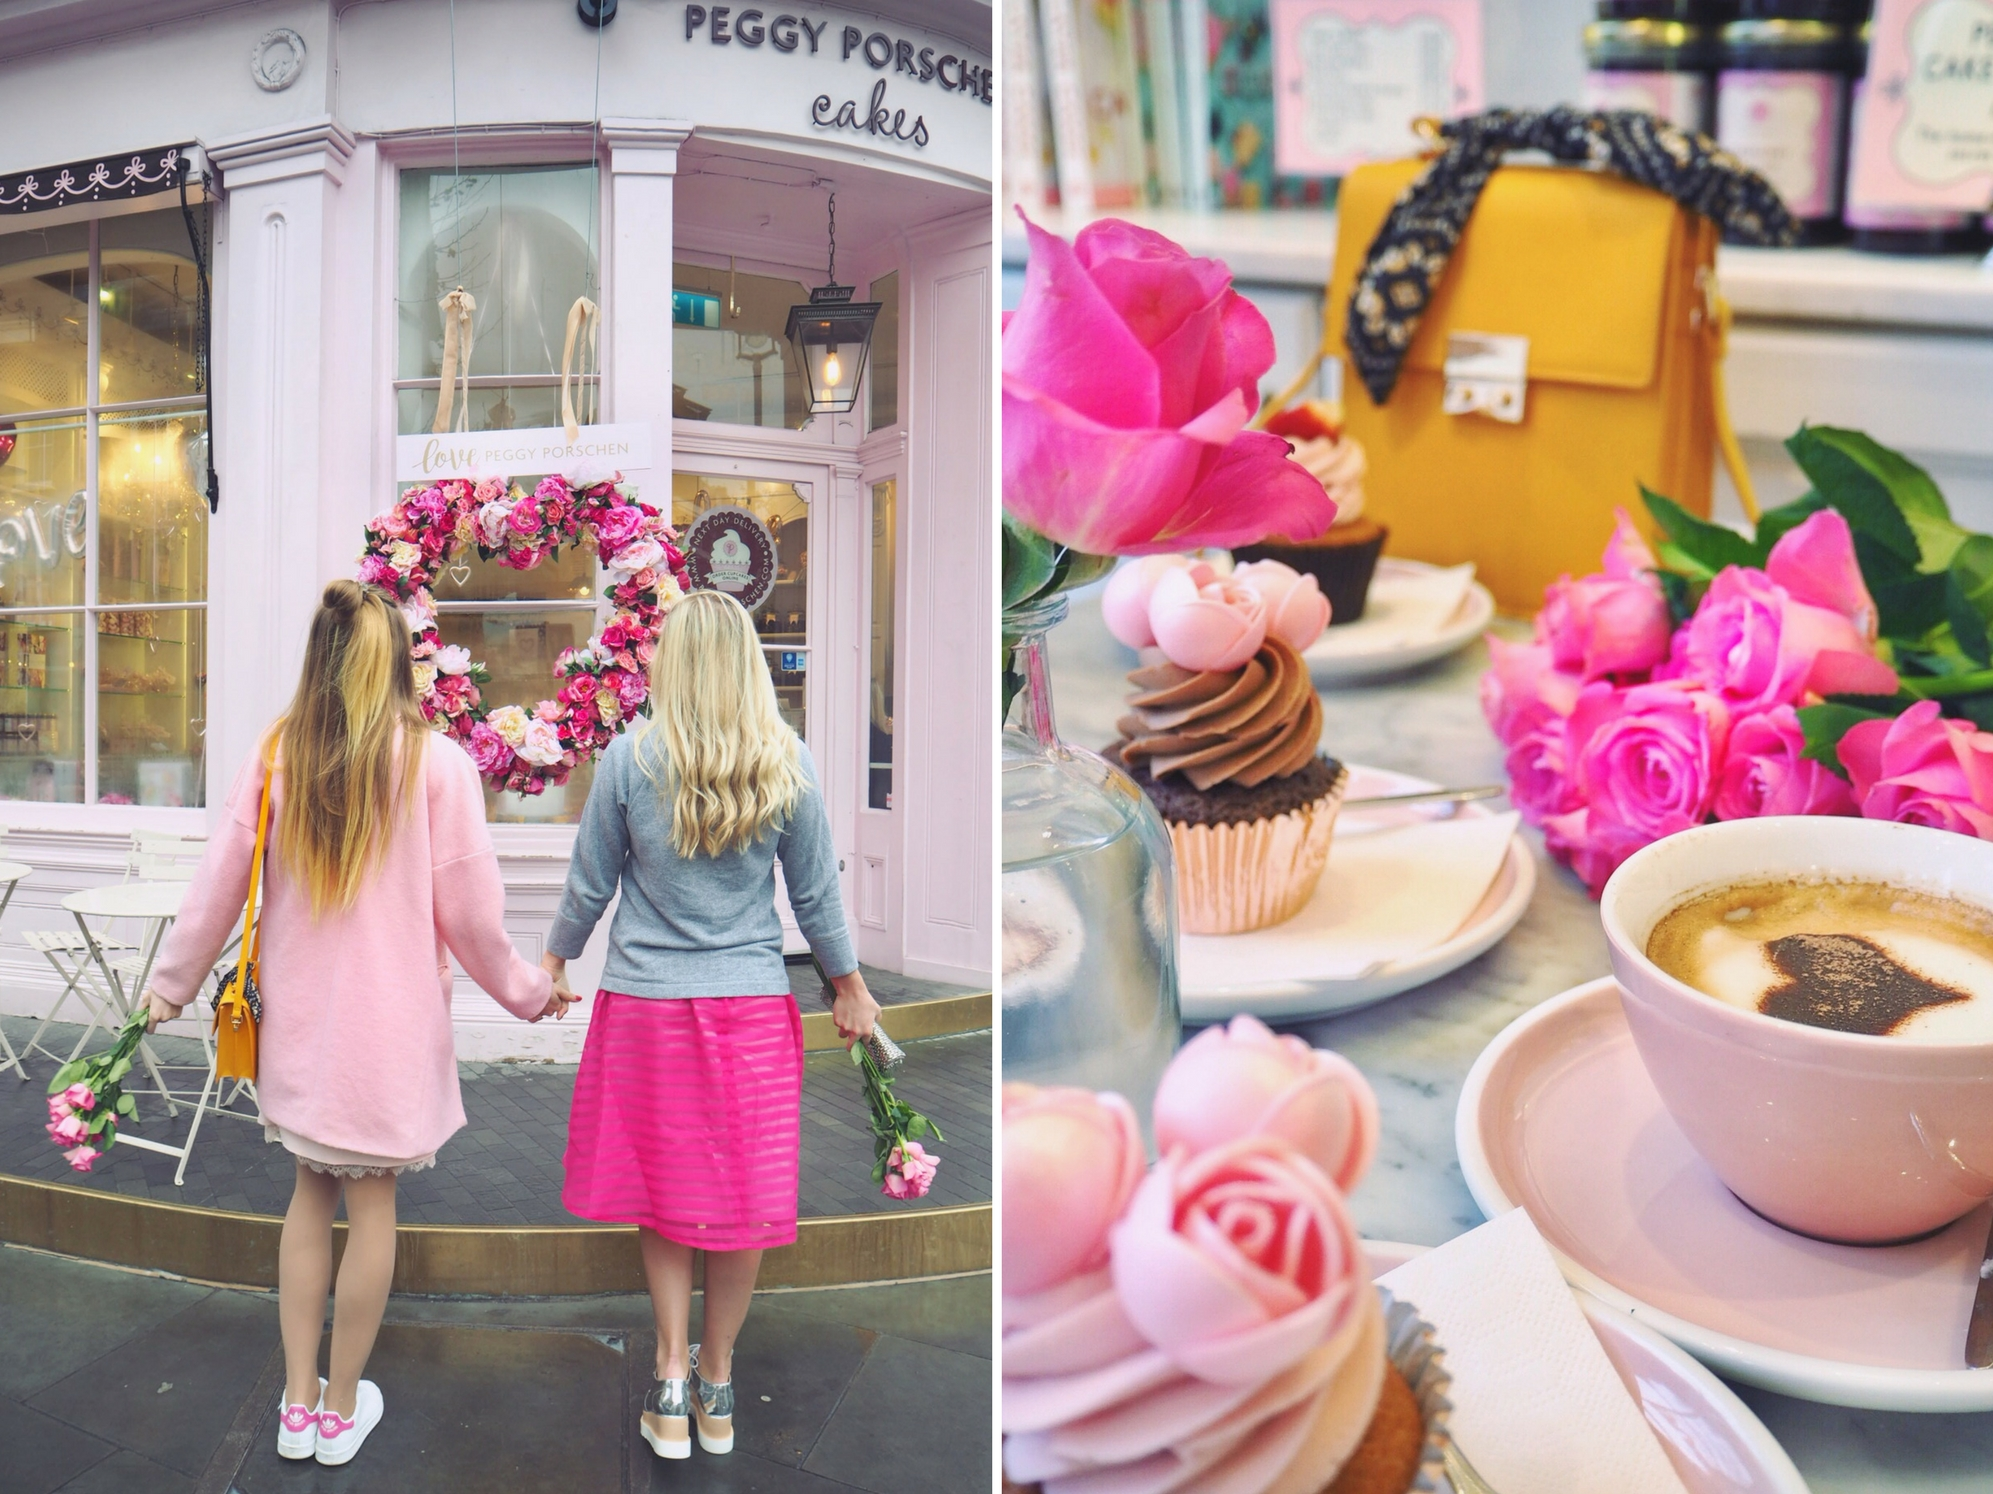 Peggy Porschen, London's Most Instagrammable Cafe